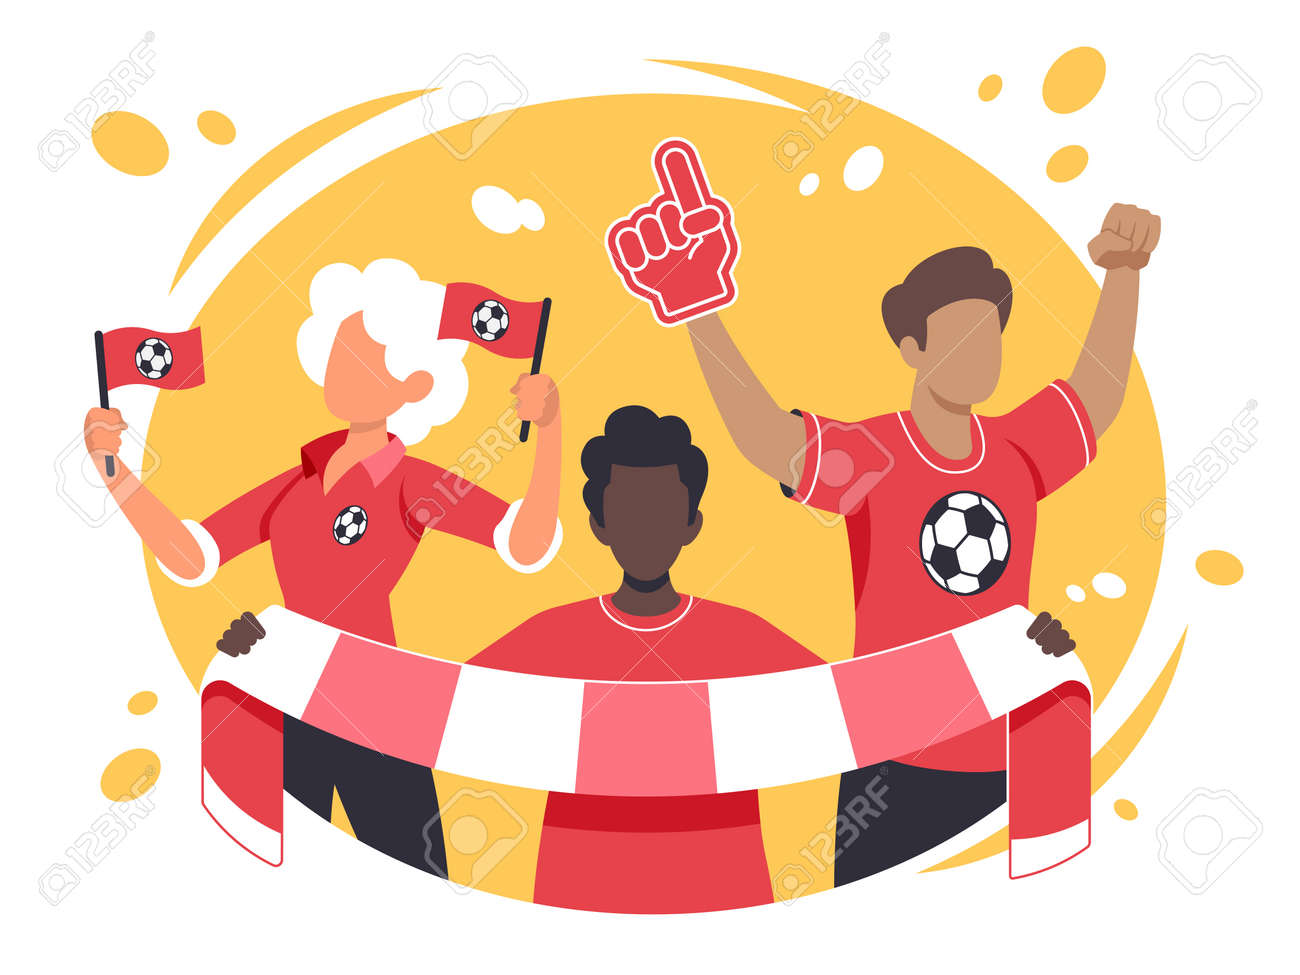 Colourful flat vector illustration of sports fans - 168742686